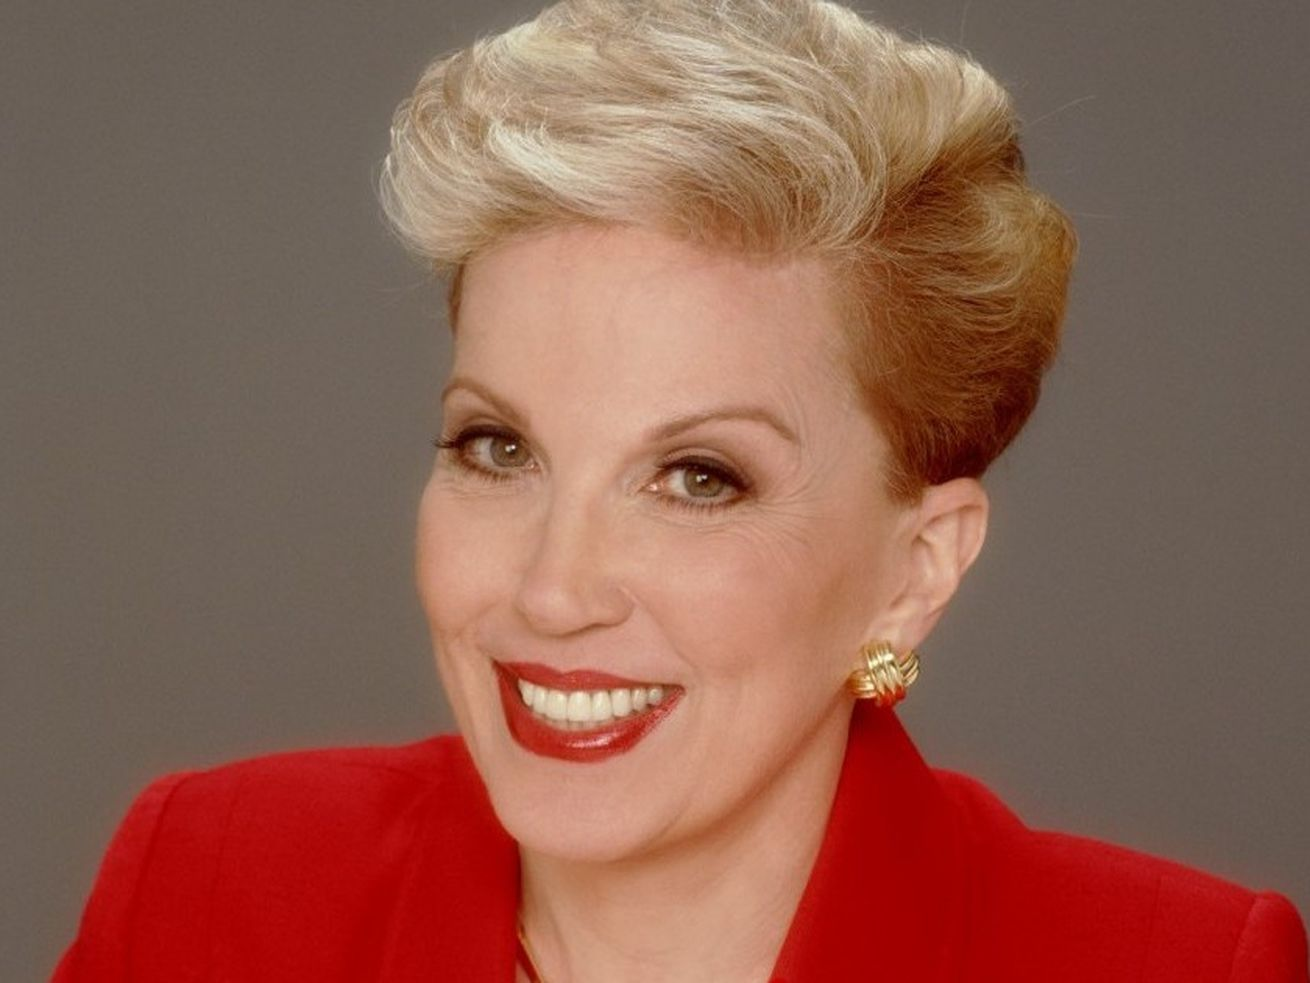 Dear Abby: When I'm broke, I can't count on my partner to help